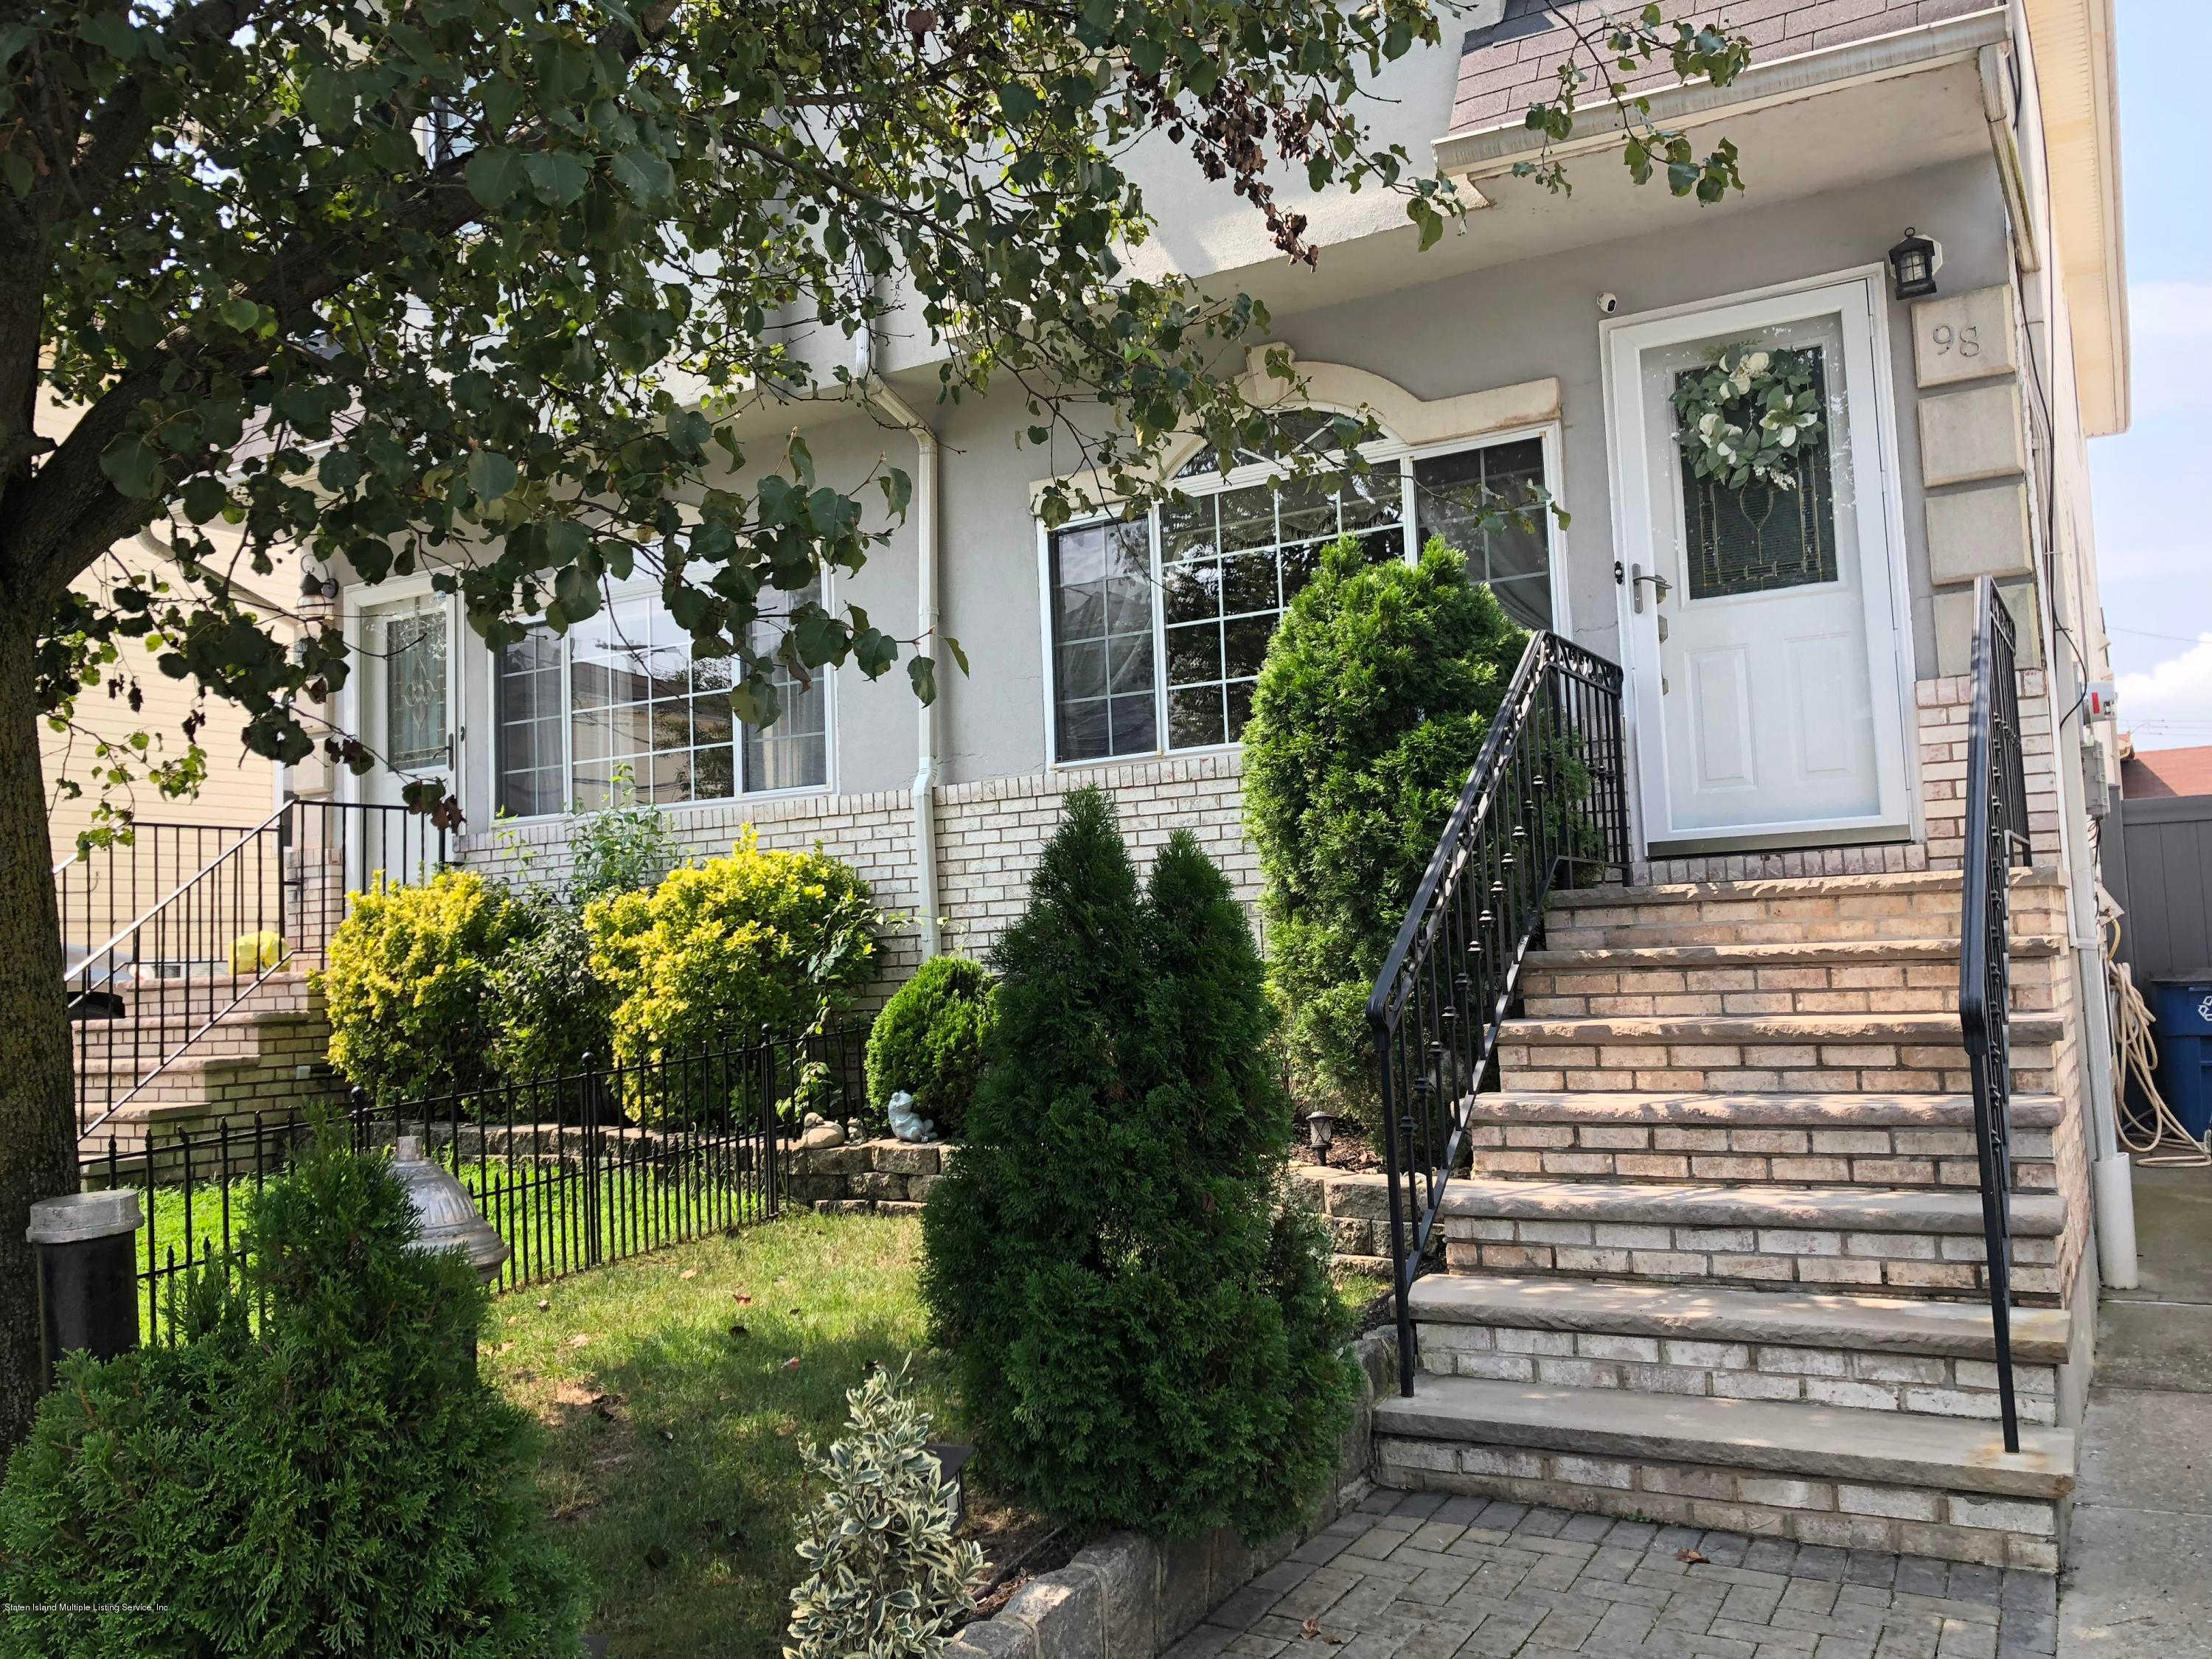 98 Harris Lane, Staten Island, NY 10309 now has a new price of $630,000!